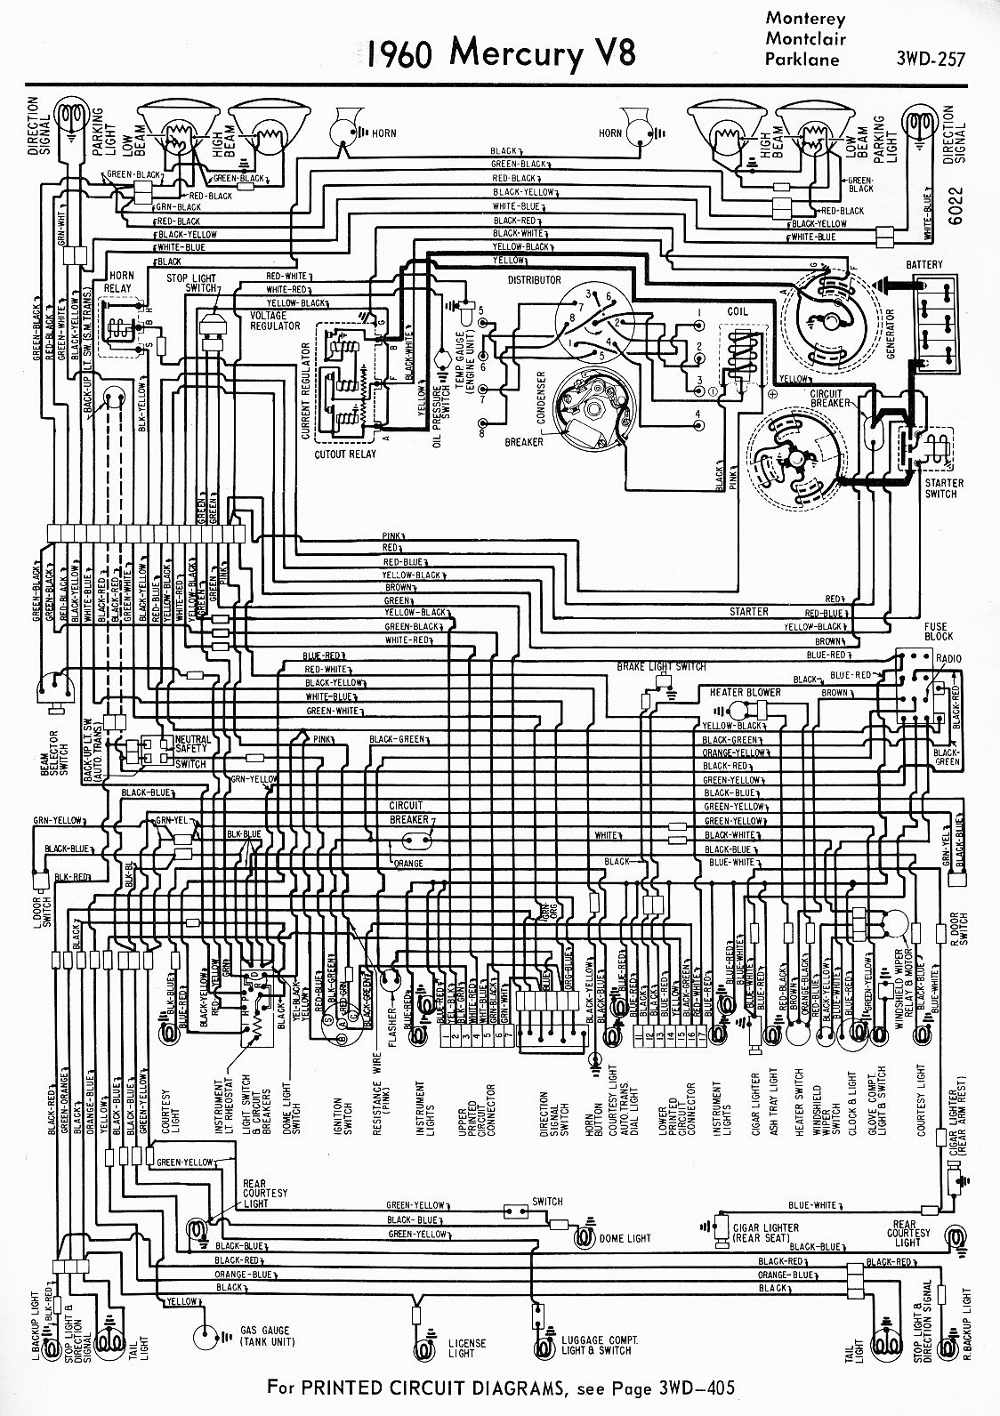 Mercury Car Manuals Wiring Diagrams Pdf Fault Codes 1960 Triumph Diagram Download